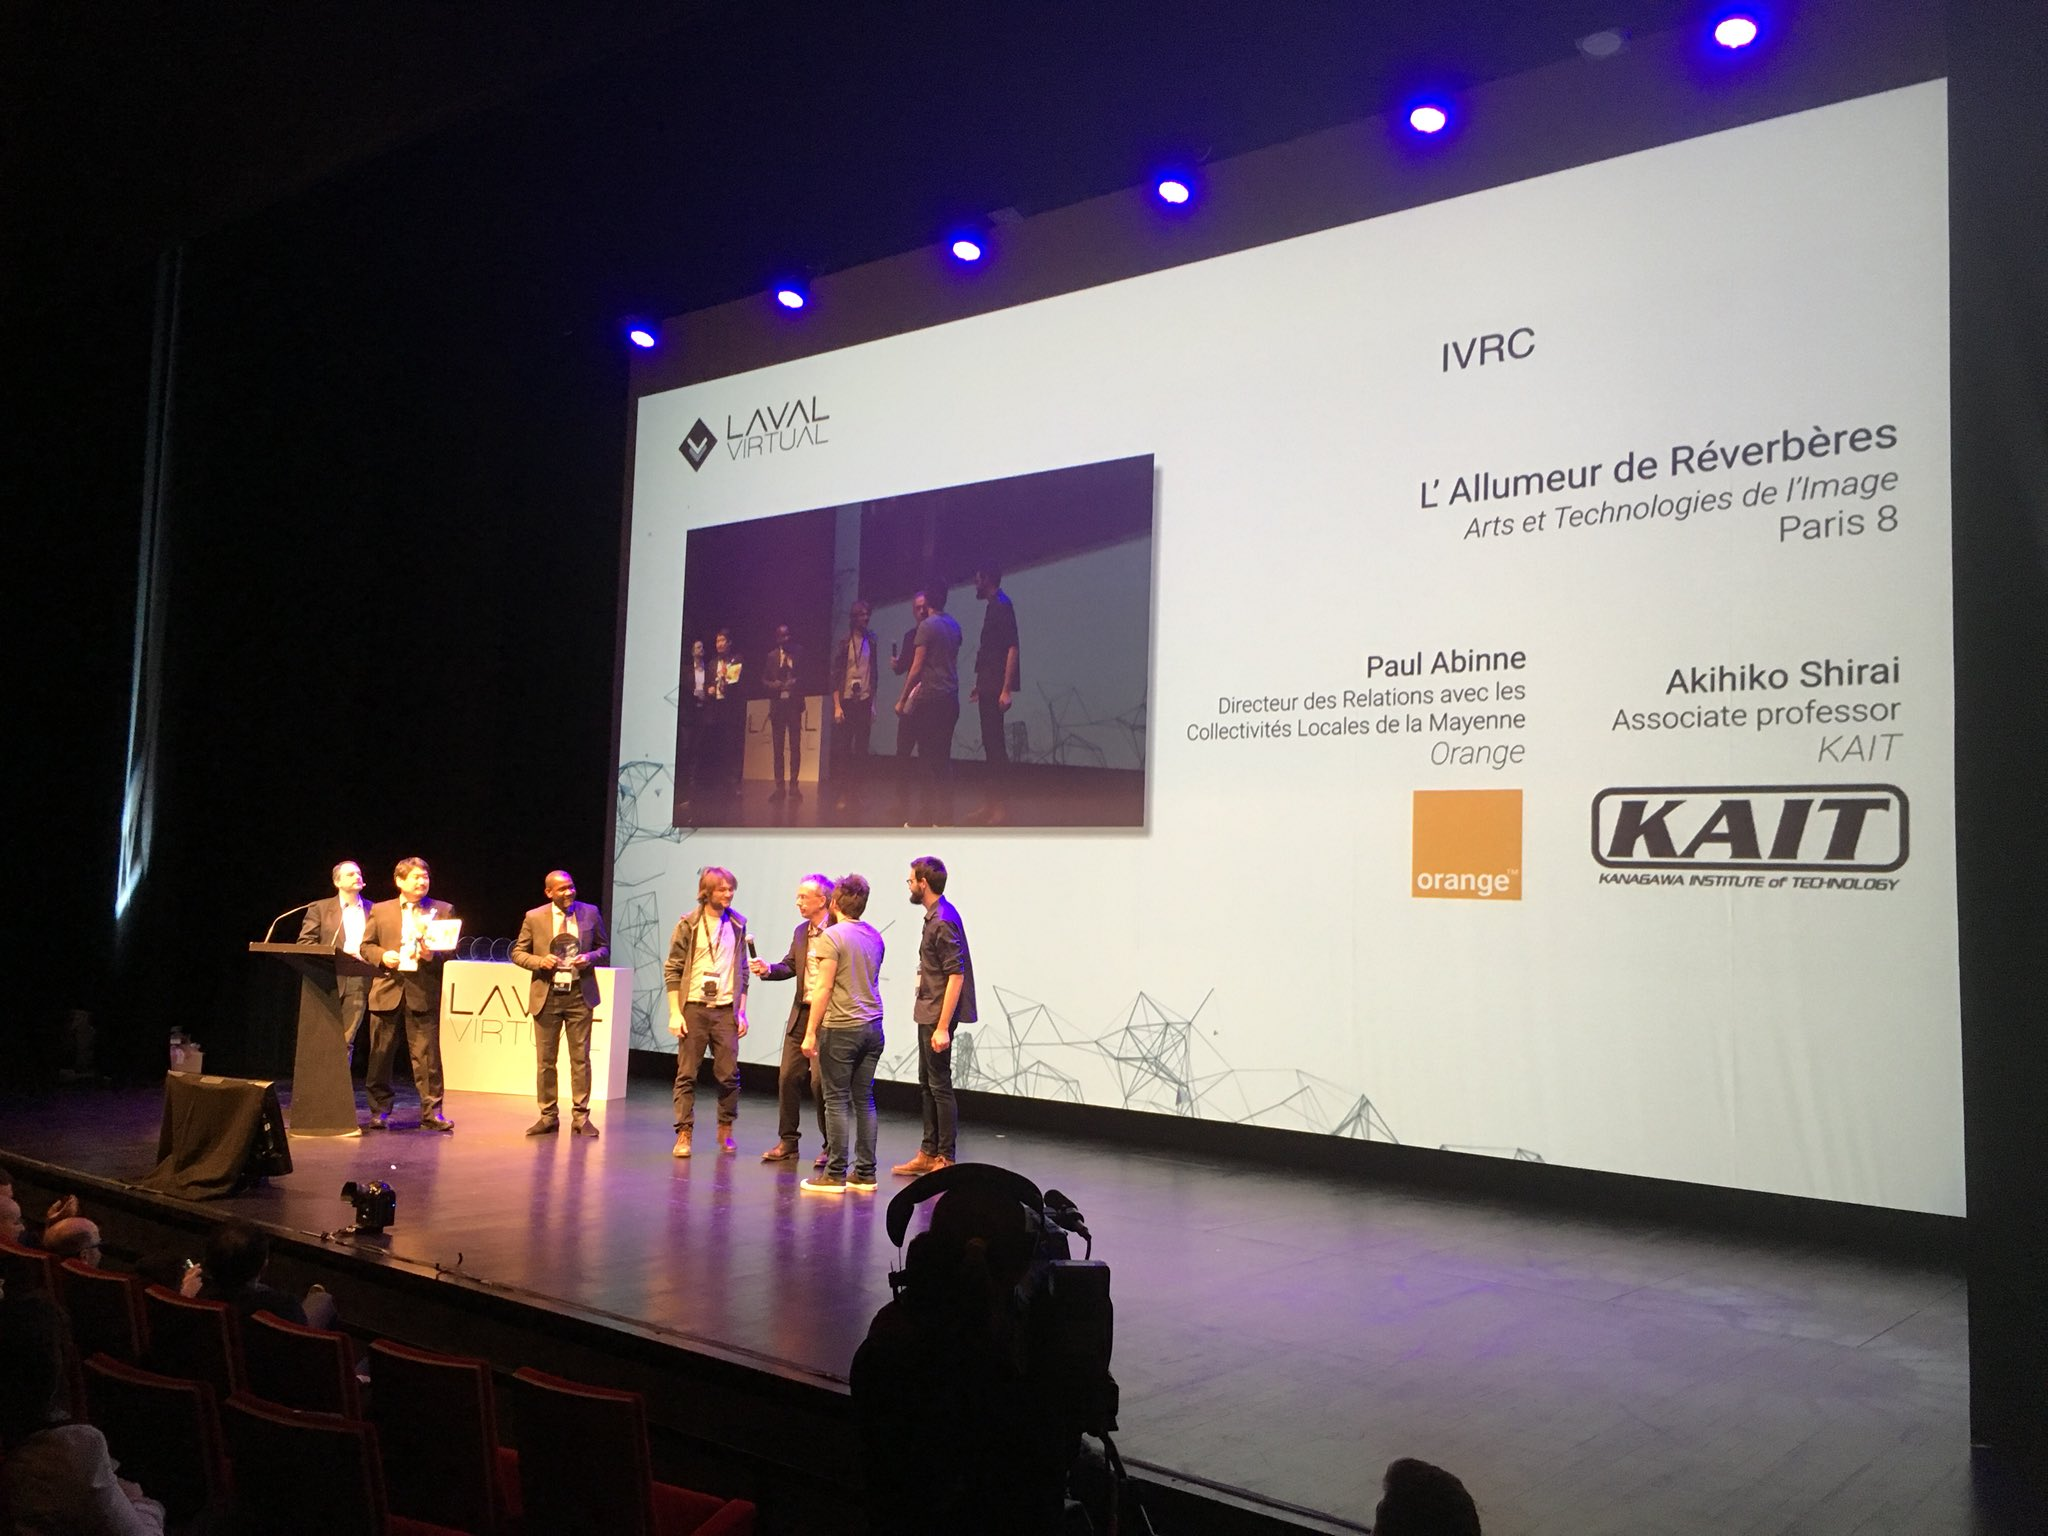 L'allumeur de réverbères awarded at Laval Virtual